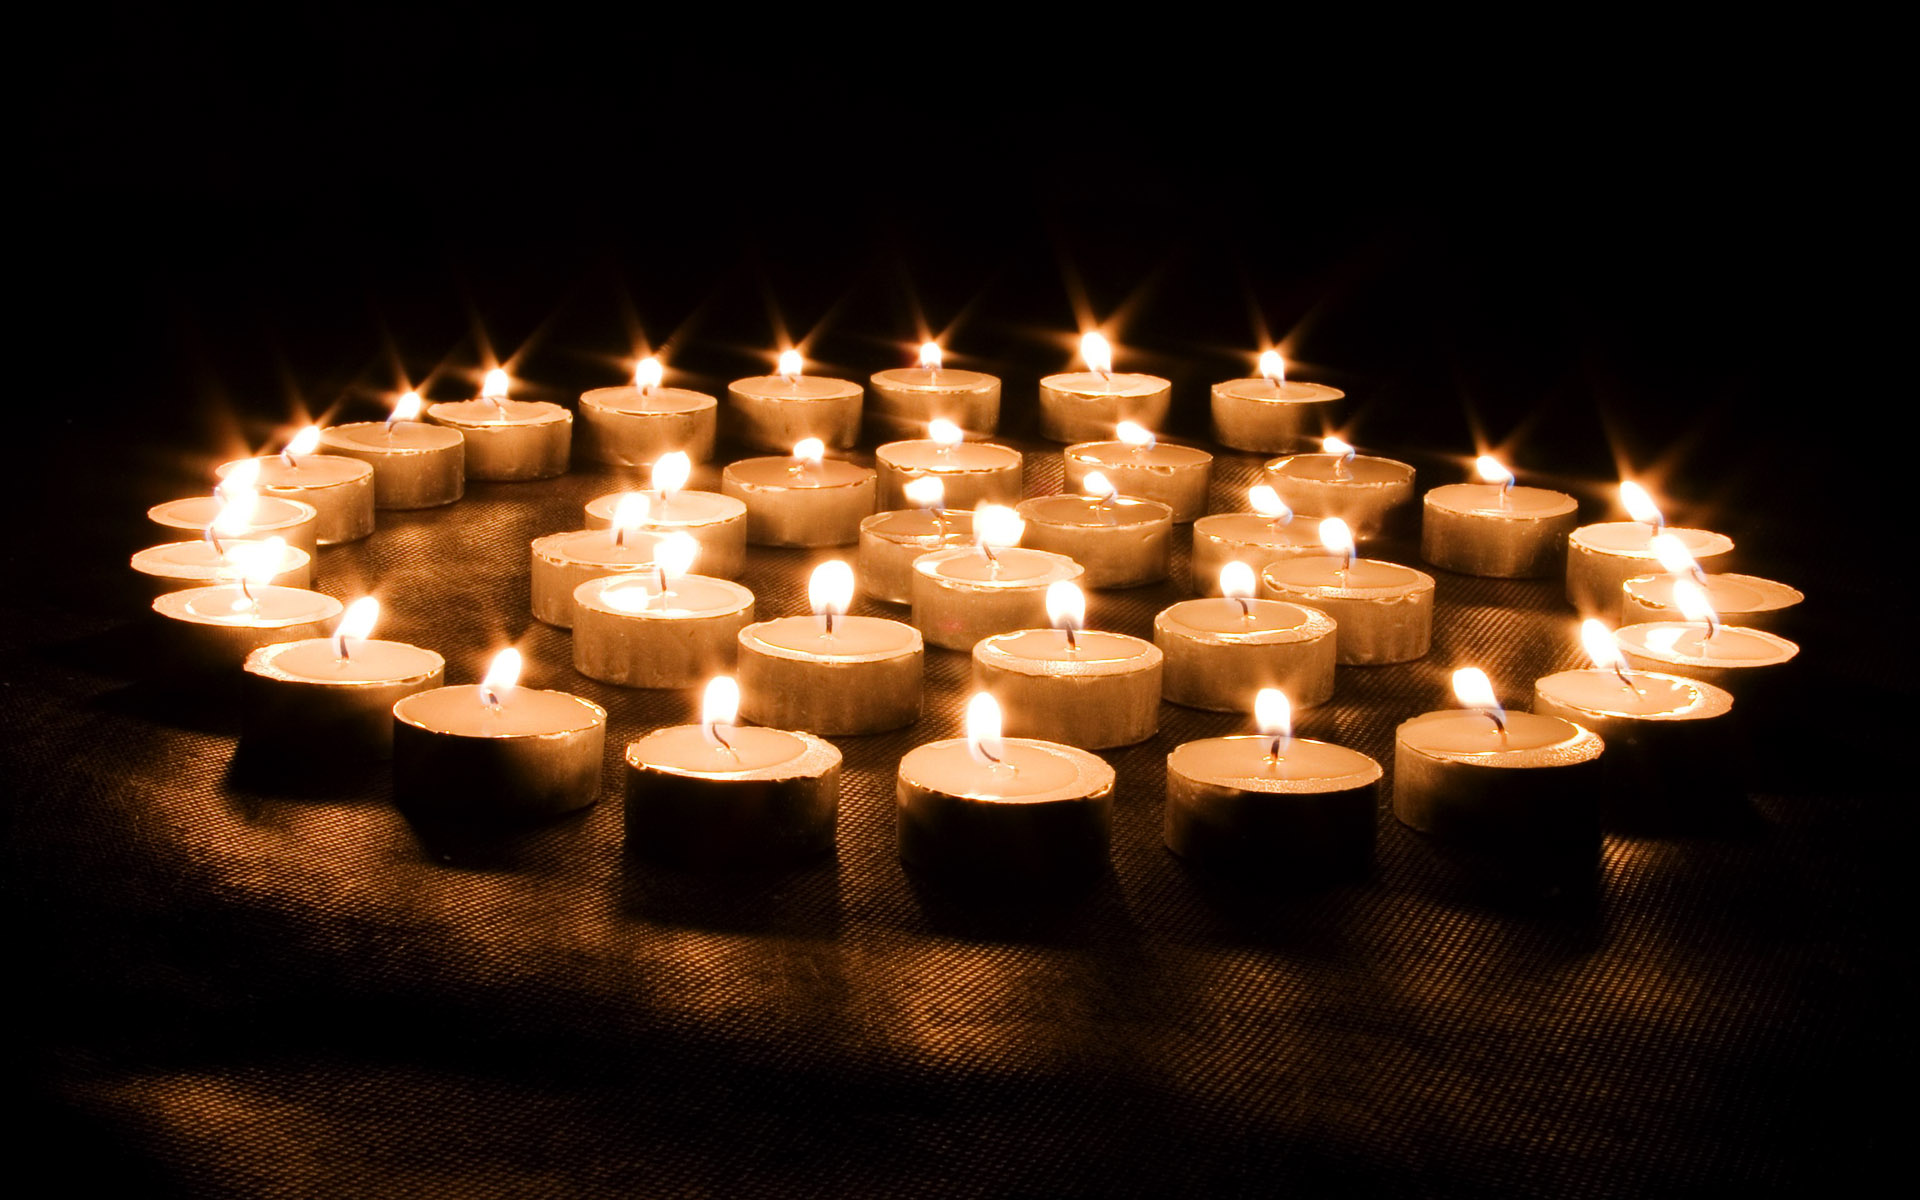 Candles Hd Wallpapers Candle Backgrounds And Images: Beautiful Candle Wallpaper